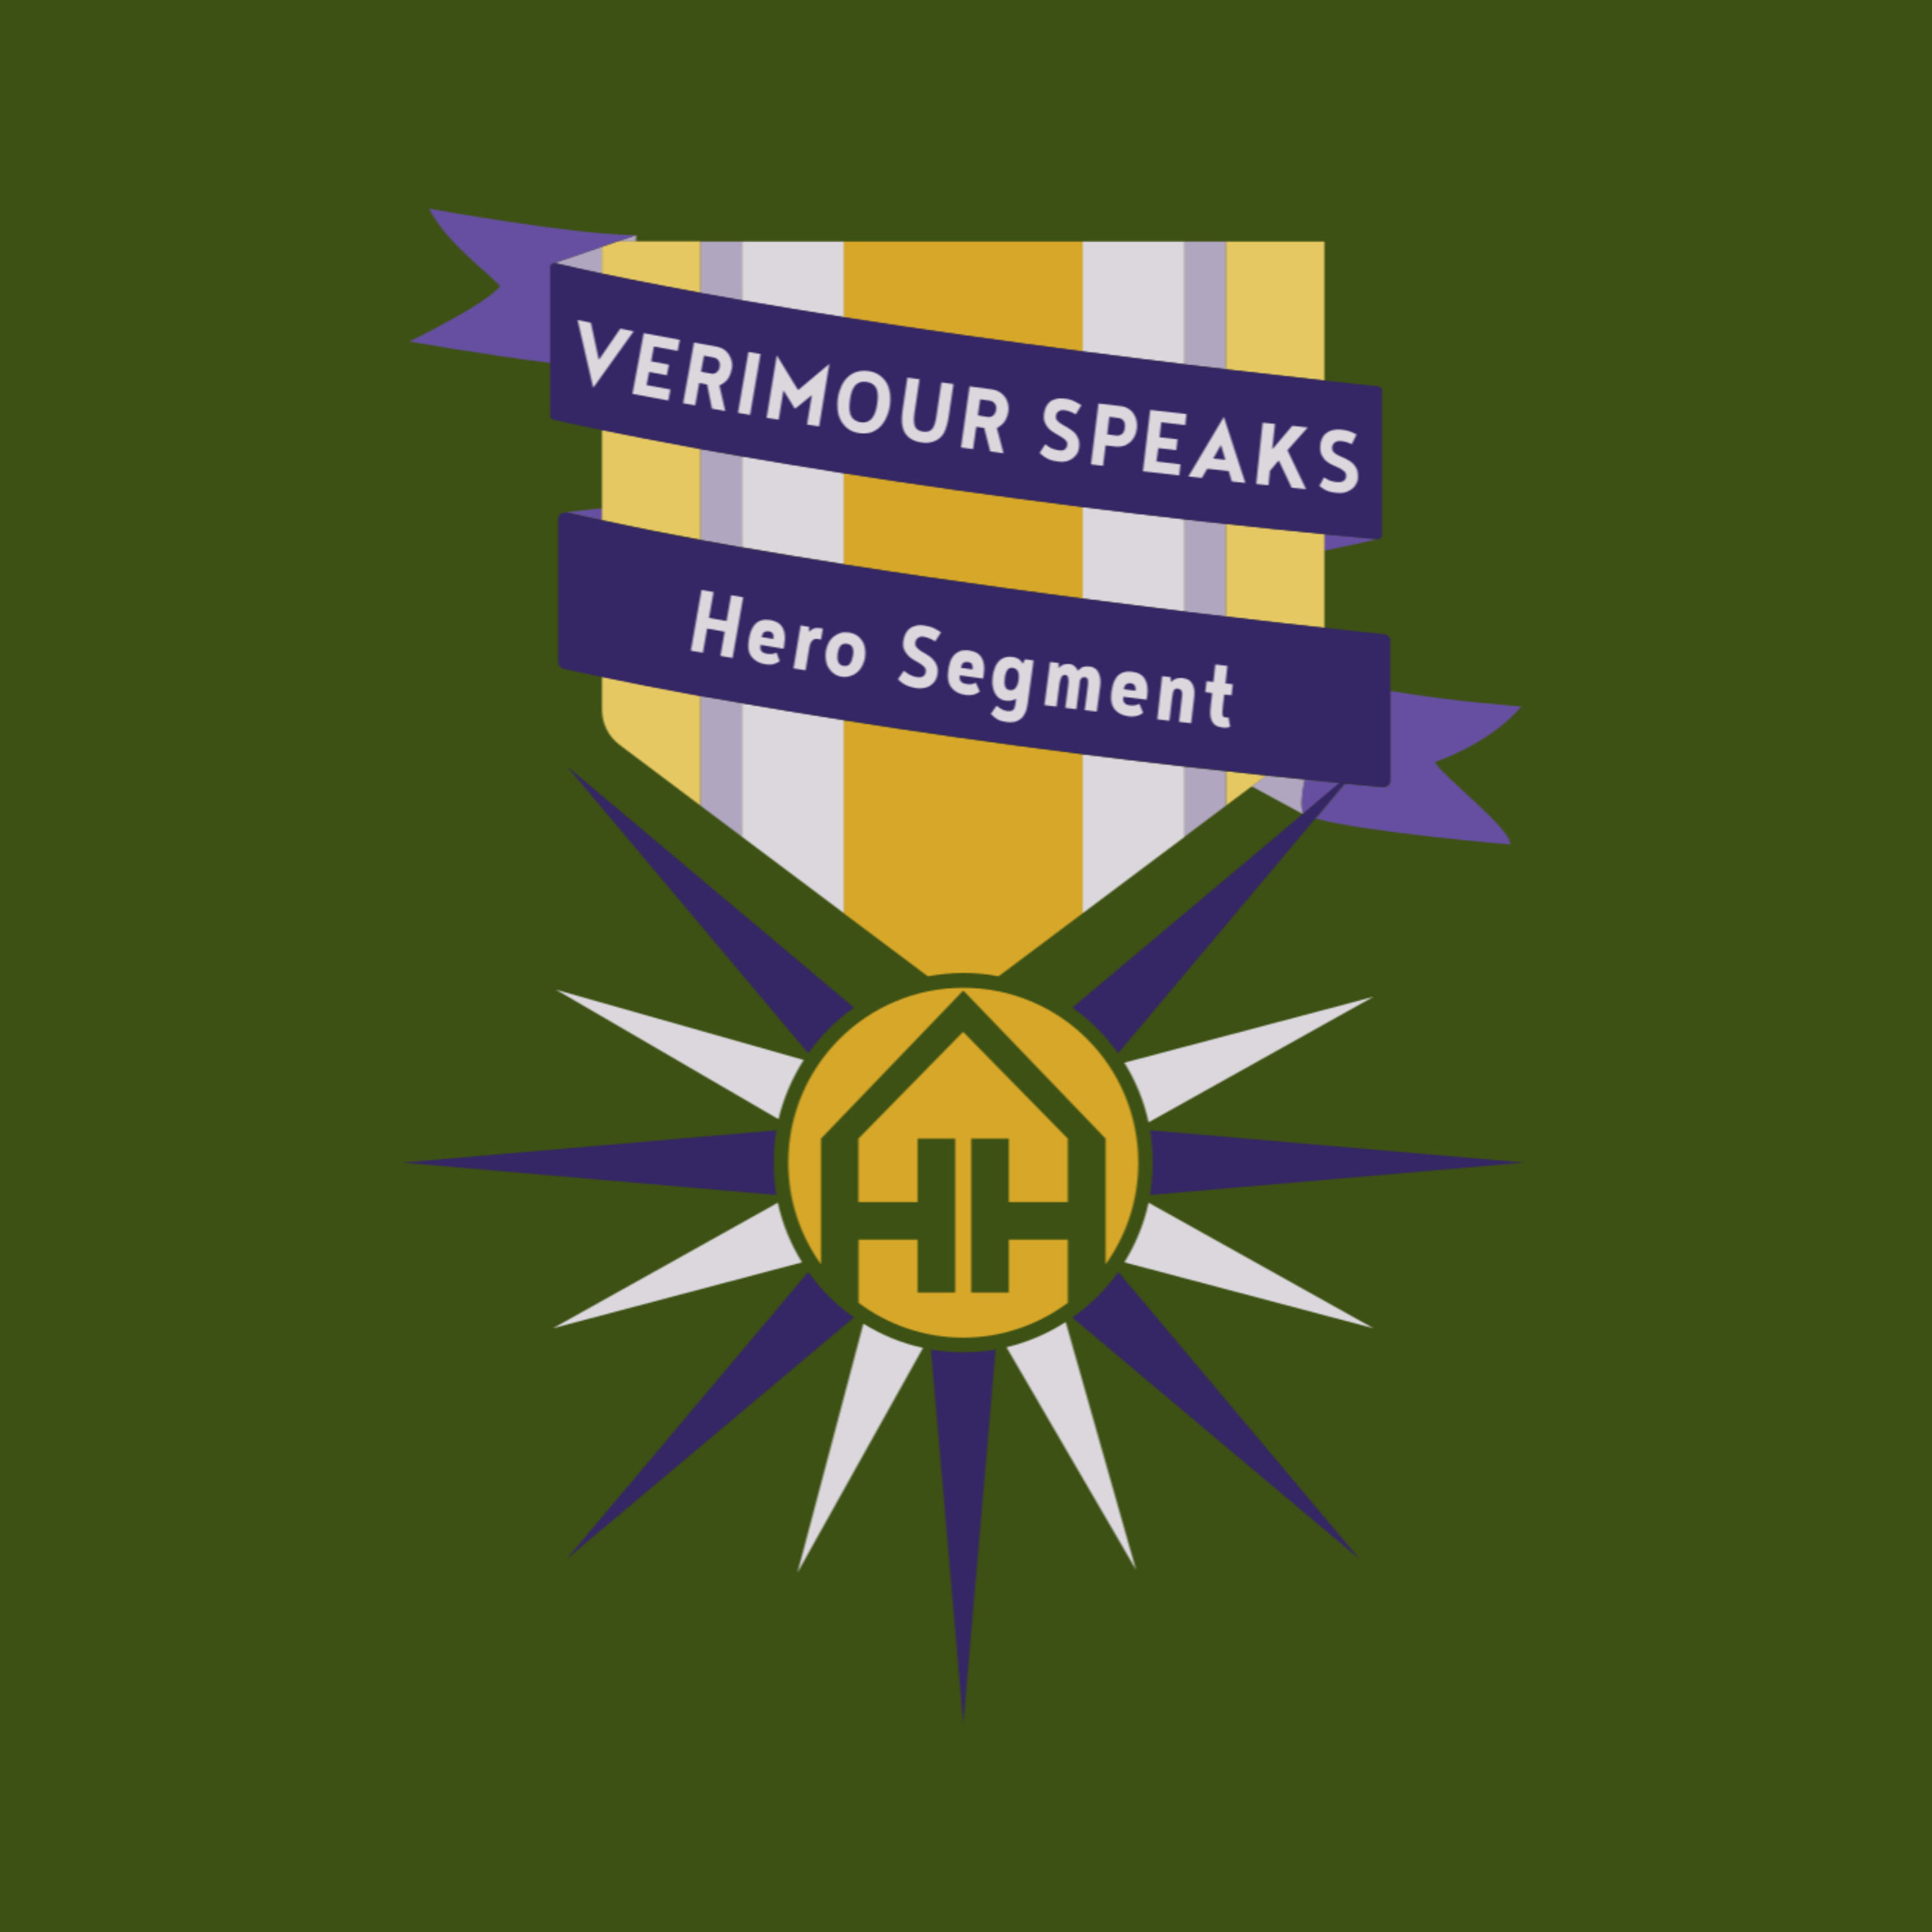 S02E50 - Hero Segment Marine Veteran Frank Manteau Founder of Kamikaze Wood Werks and Crayons Ready to Eat Part One